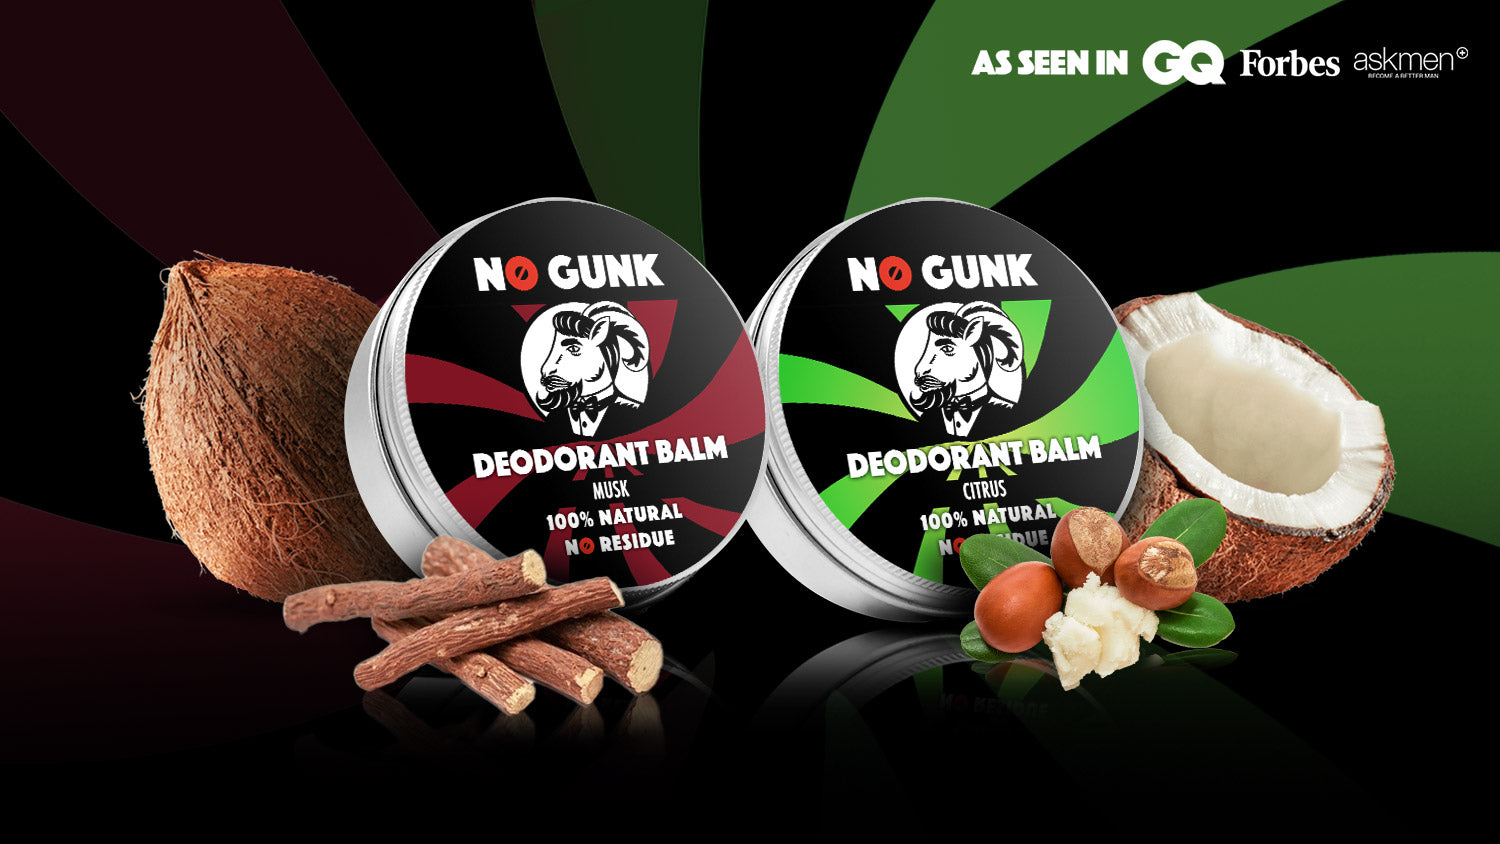 NO-GUNK-all-natural-aluminium-free-deodorant-balm-coconut-oil-shea-butter